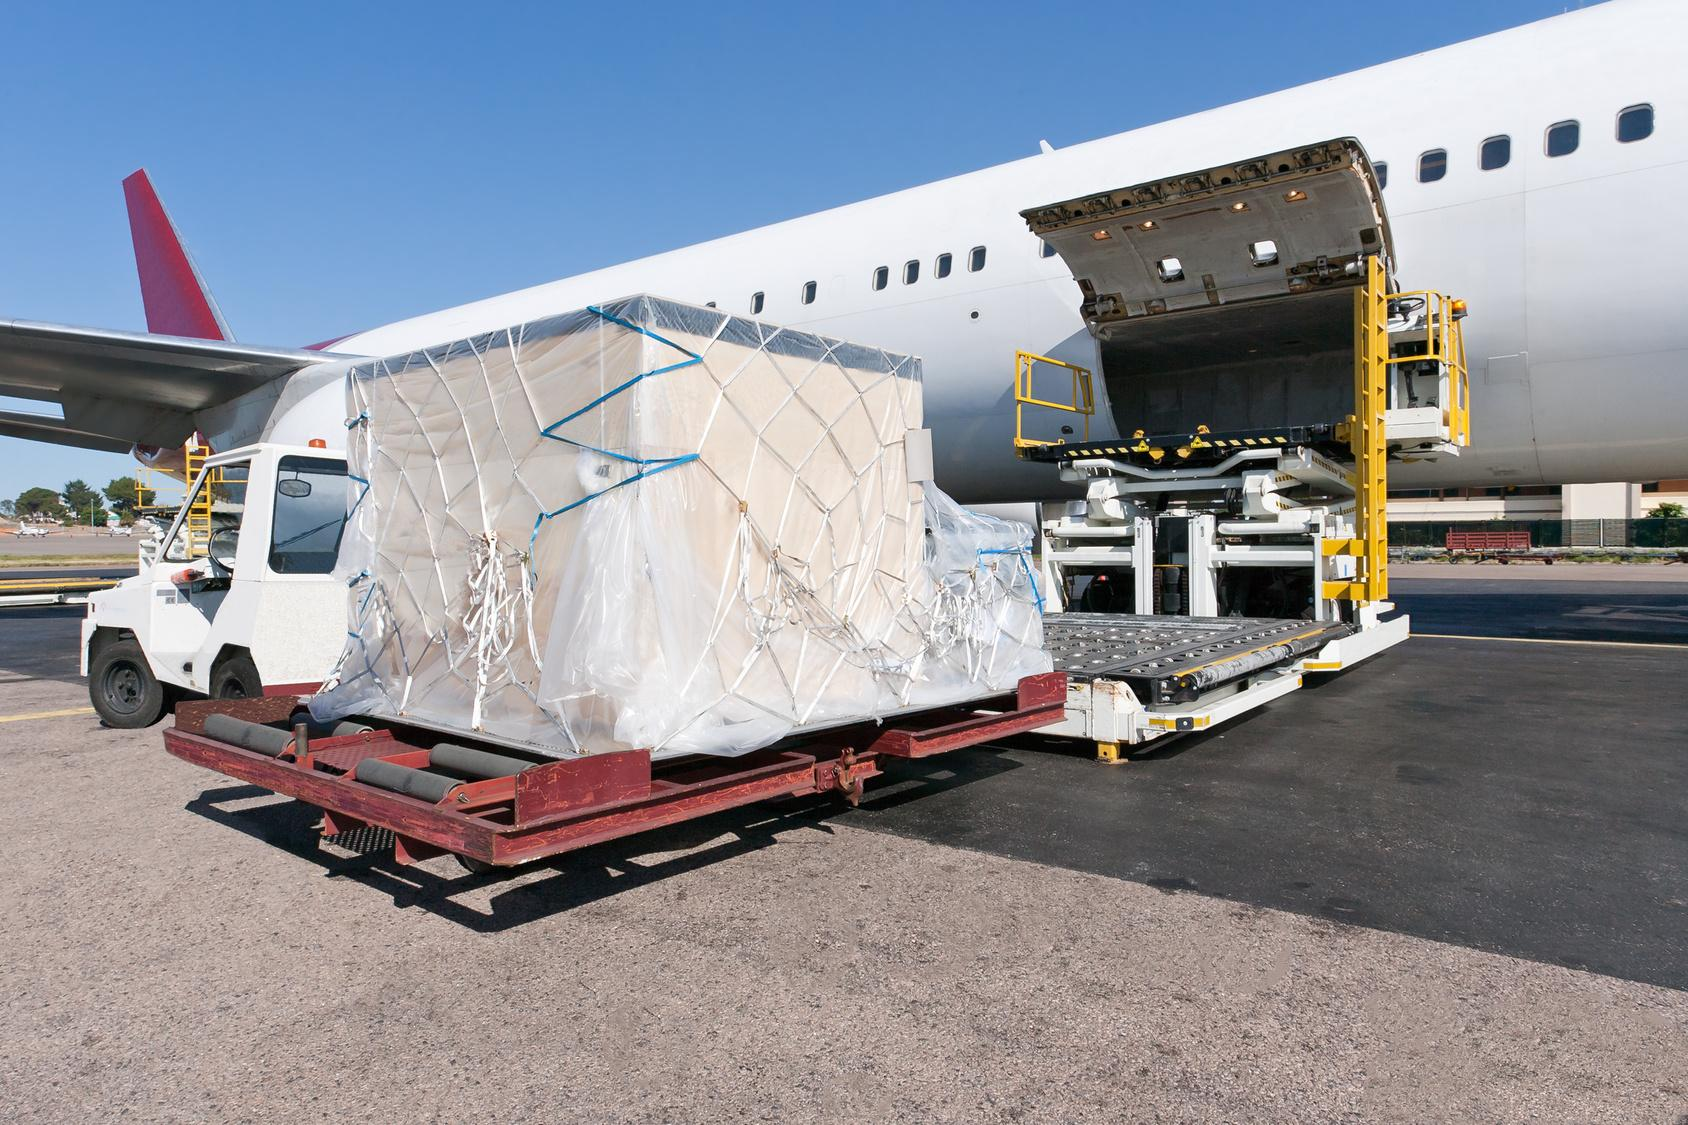 Consignments via the cold chain, distribution of pharmaceutical products via the cold chain, insulated shipping packaging solutions for transporting pharmaceutical products